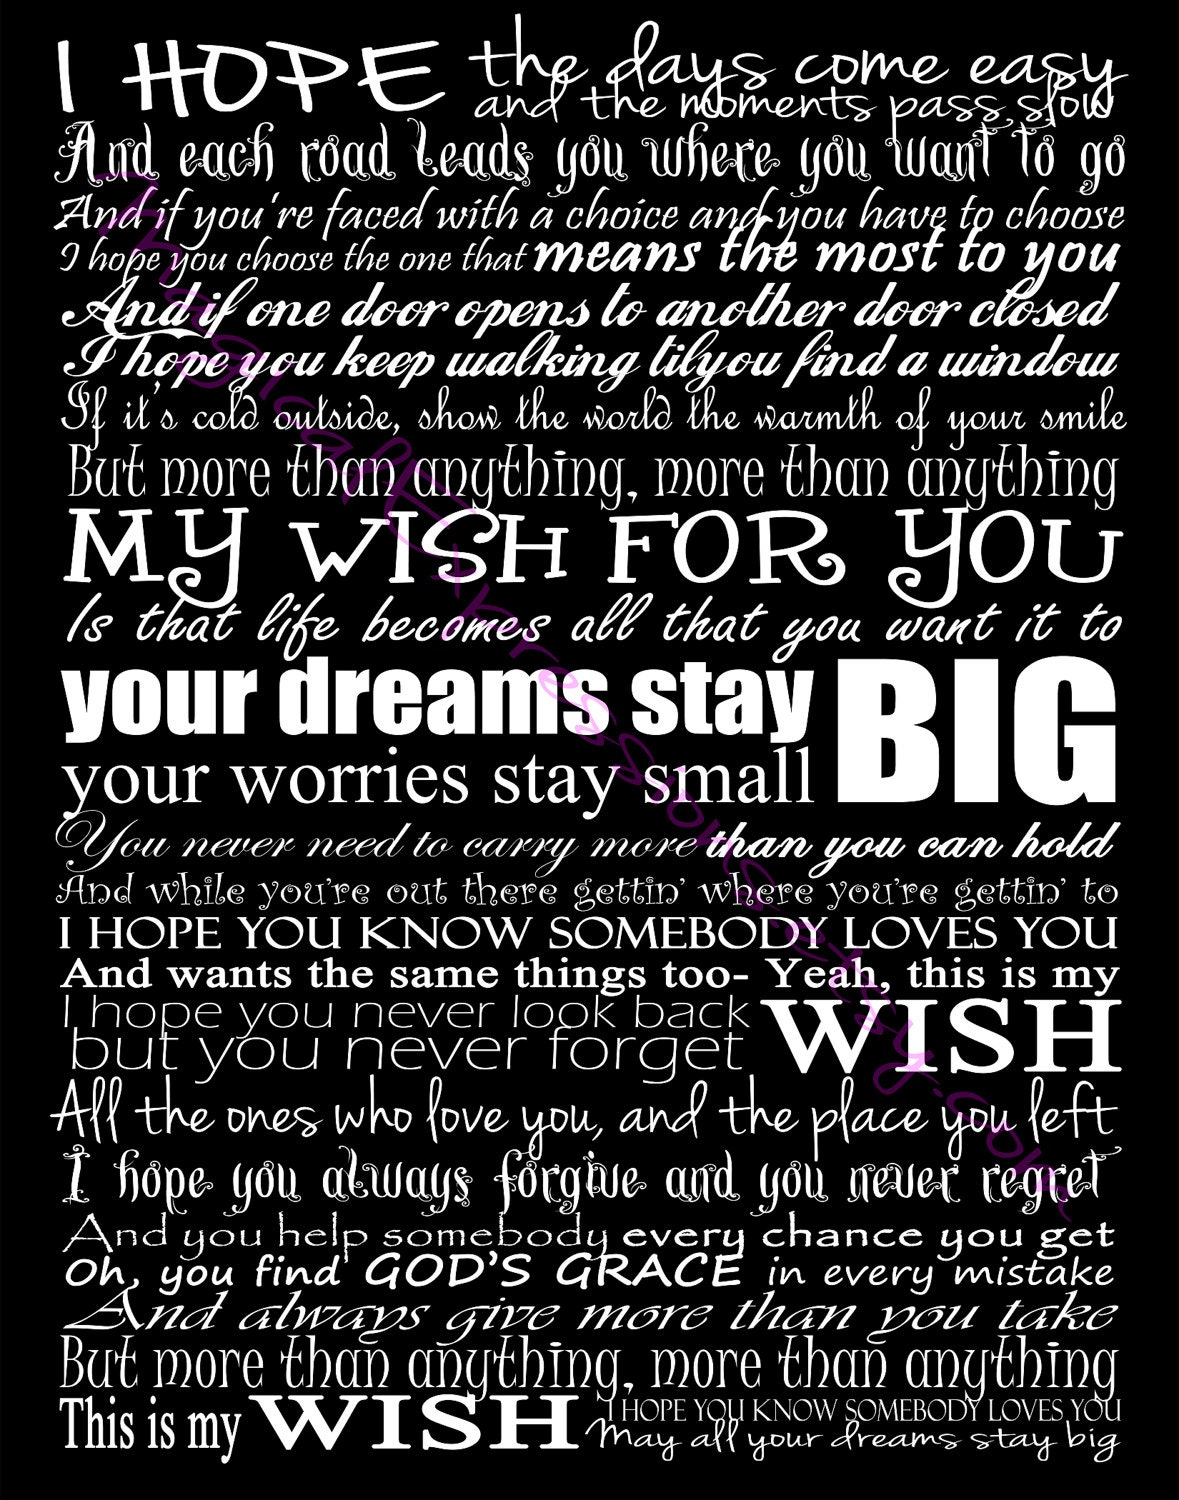 Who wrote my wish by rascal